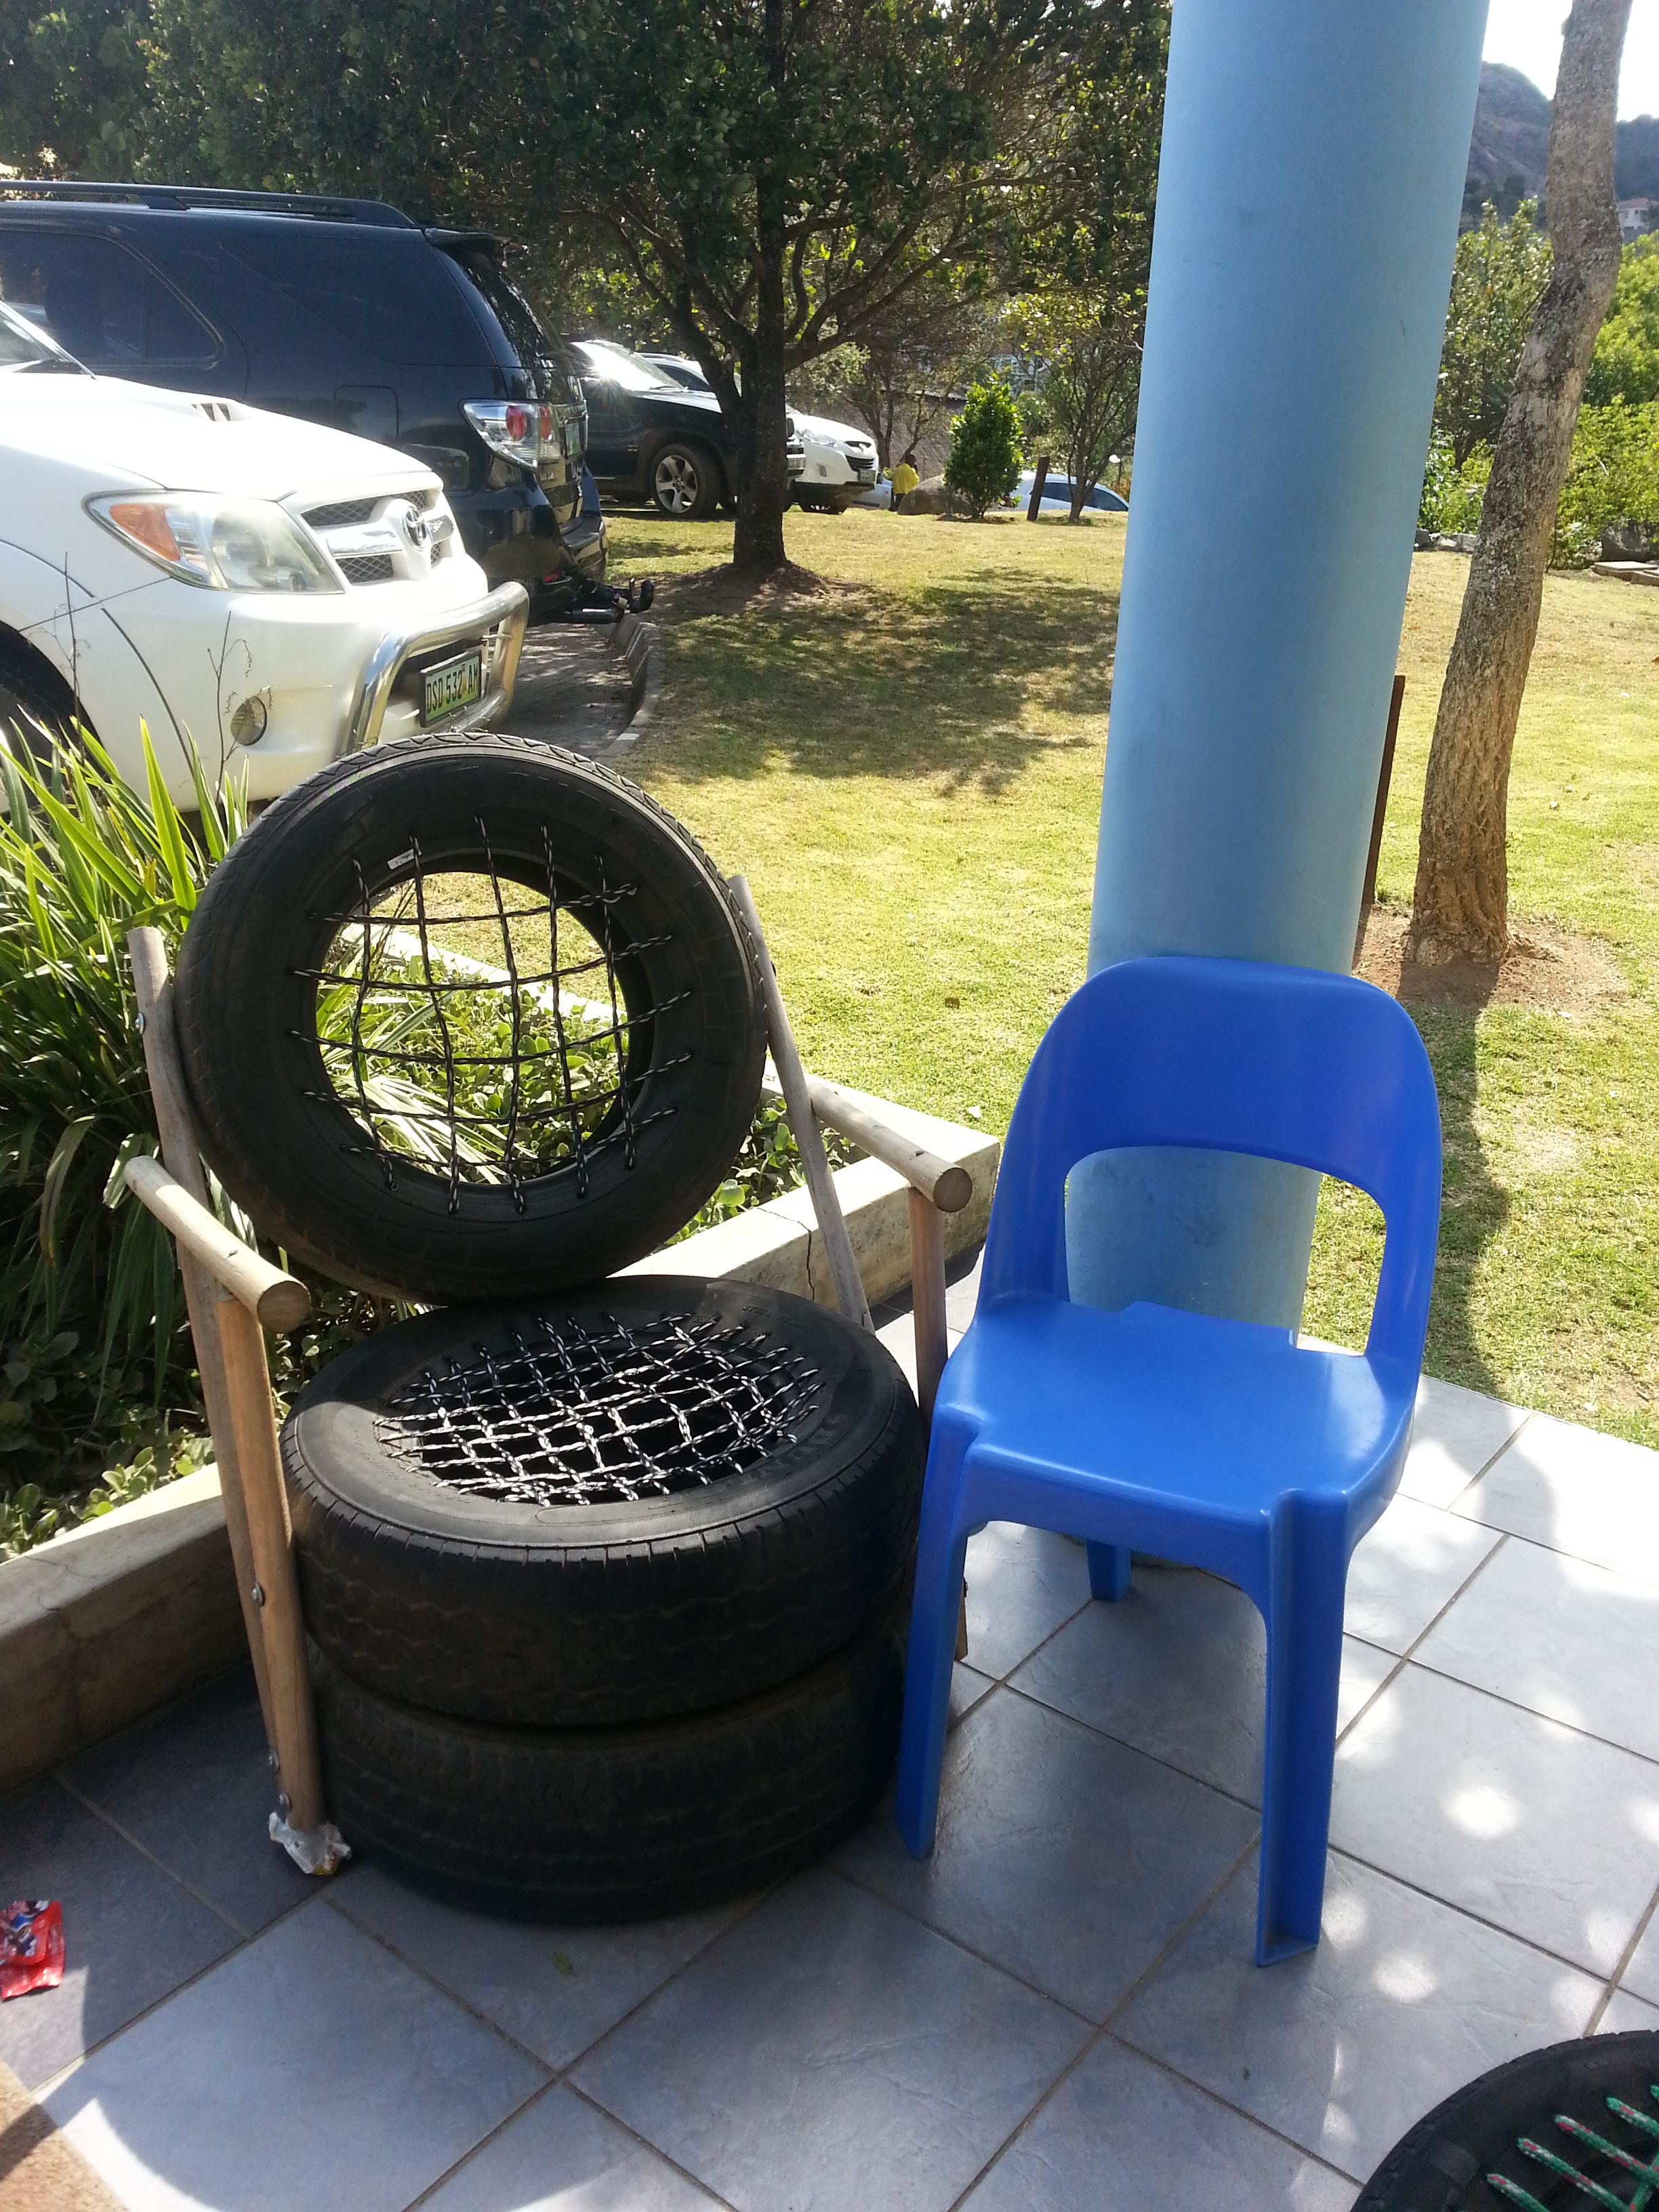 Tire Chairs 2 Waterford Nov 2015.jpg